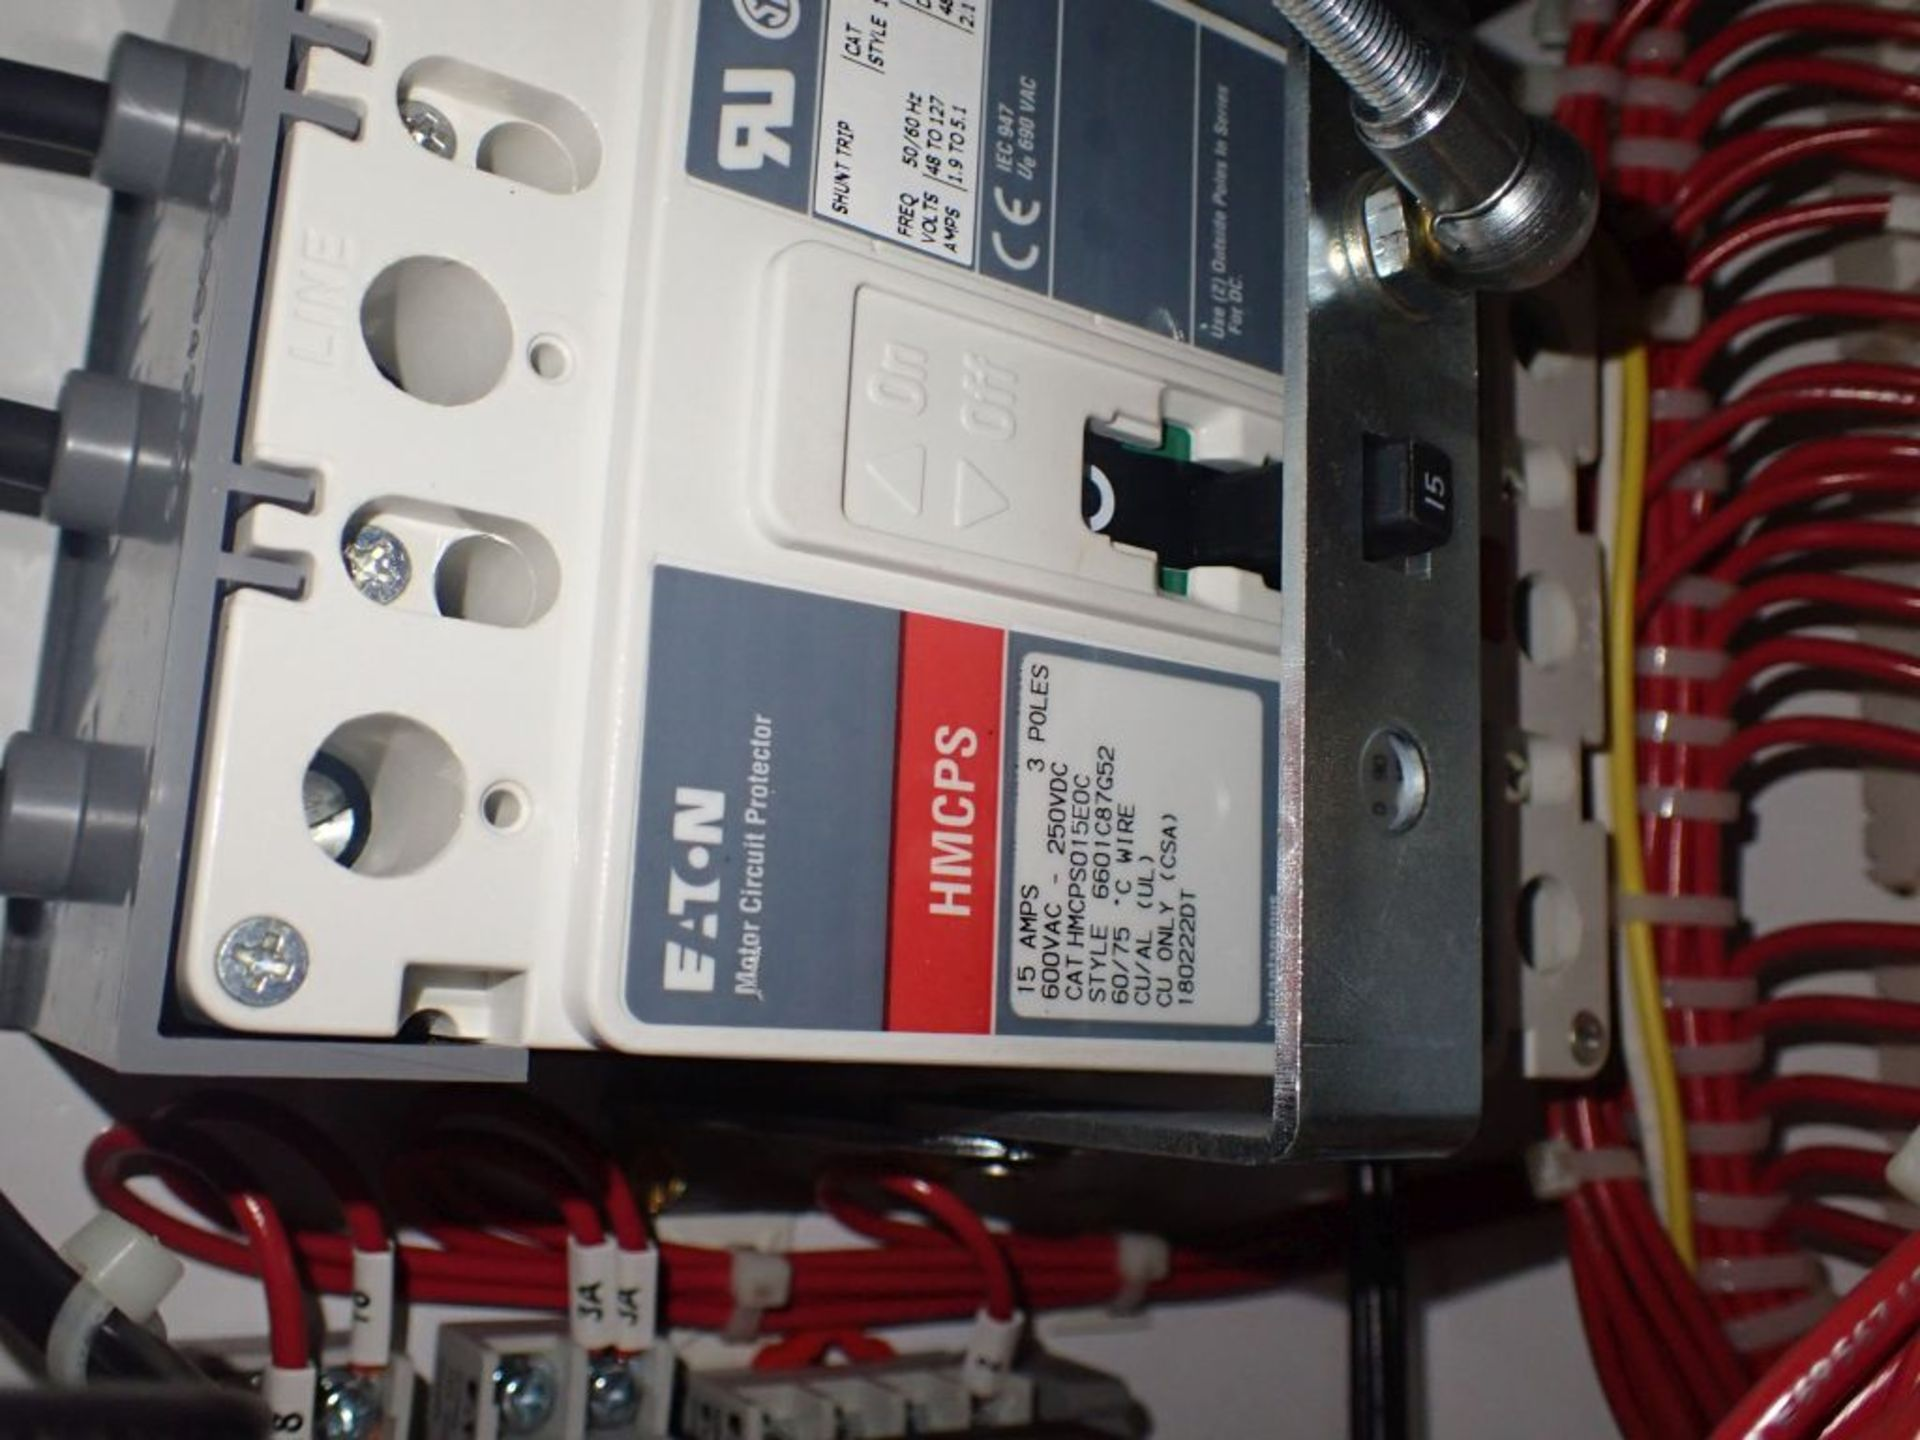 Eaton Freedom Flashgard Motor Control Center w/Components | (5) F206-15A-10HP; (4) F206-30A-10HP; ( - Image 31 of 84